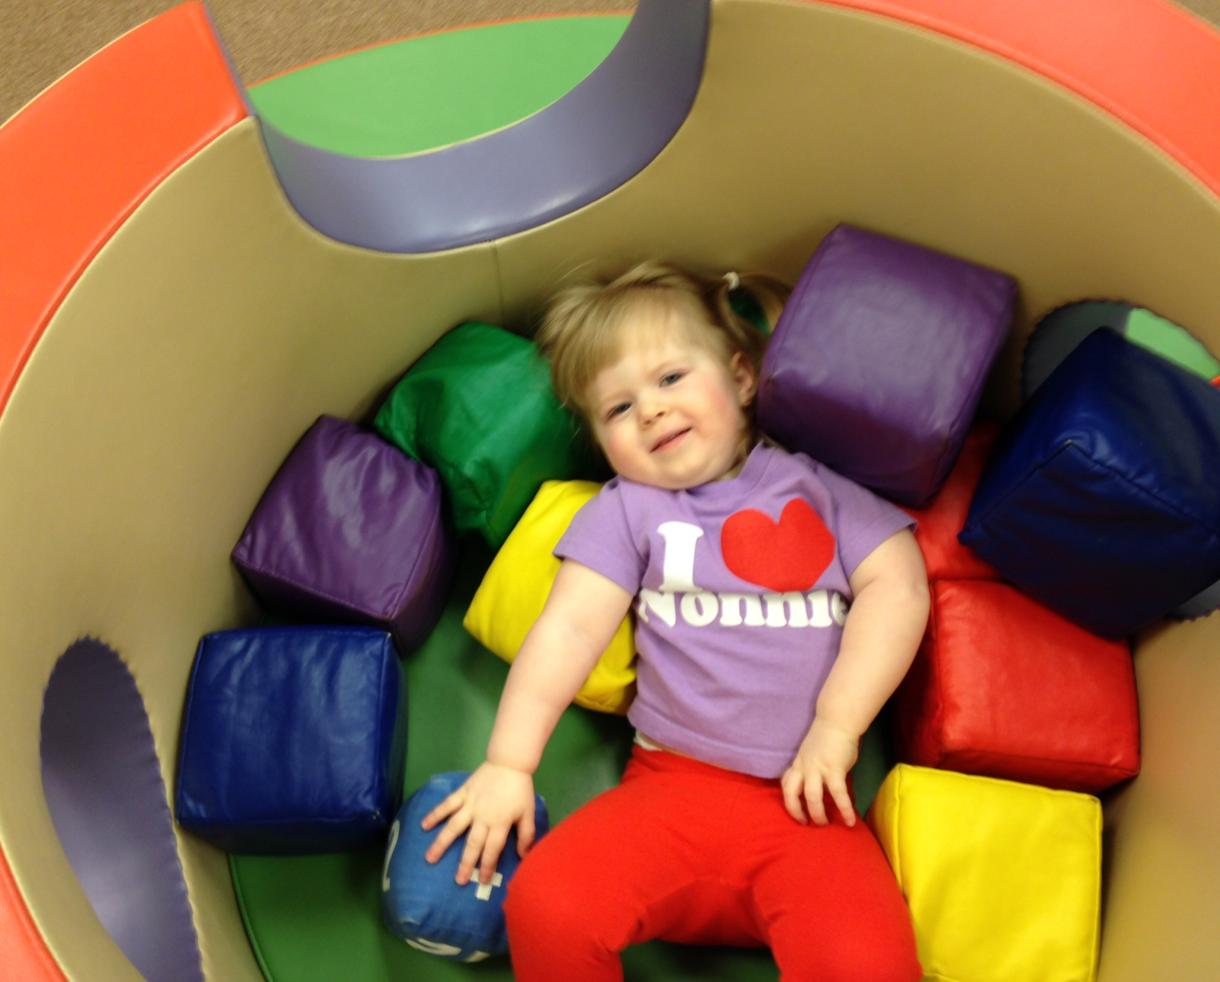 $10 for 2 Open Play Passes at Chibis Indoor Playground for Ages 8 and Under in Ashburn ($20 Value - 50% Off)